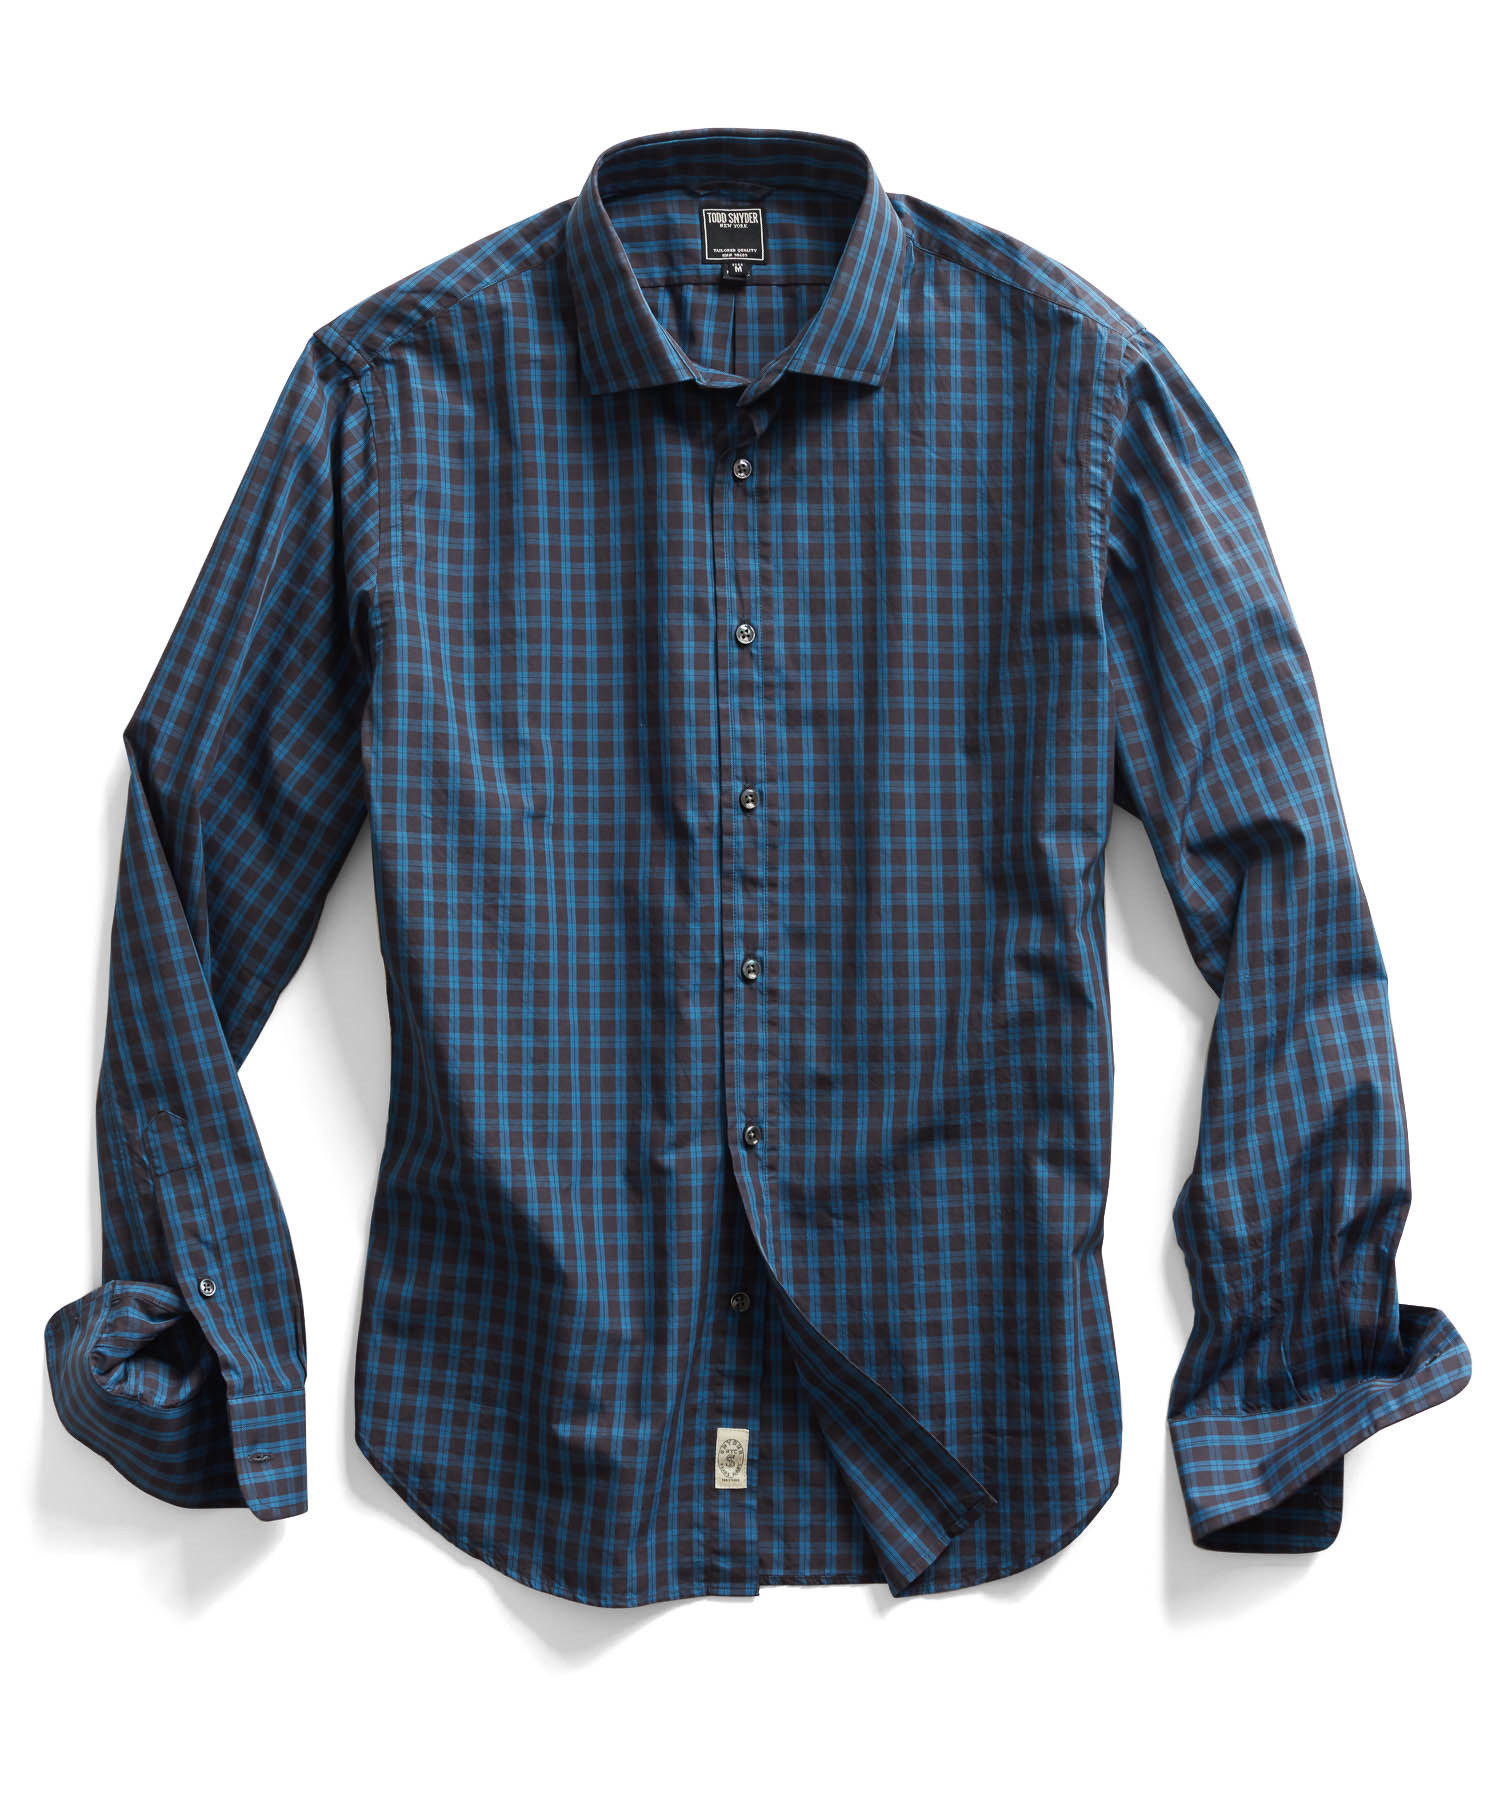 Todd snyder spread collar dress shirt in blue check in for Blue check dress shirt